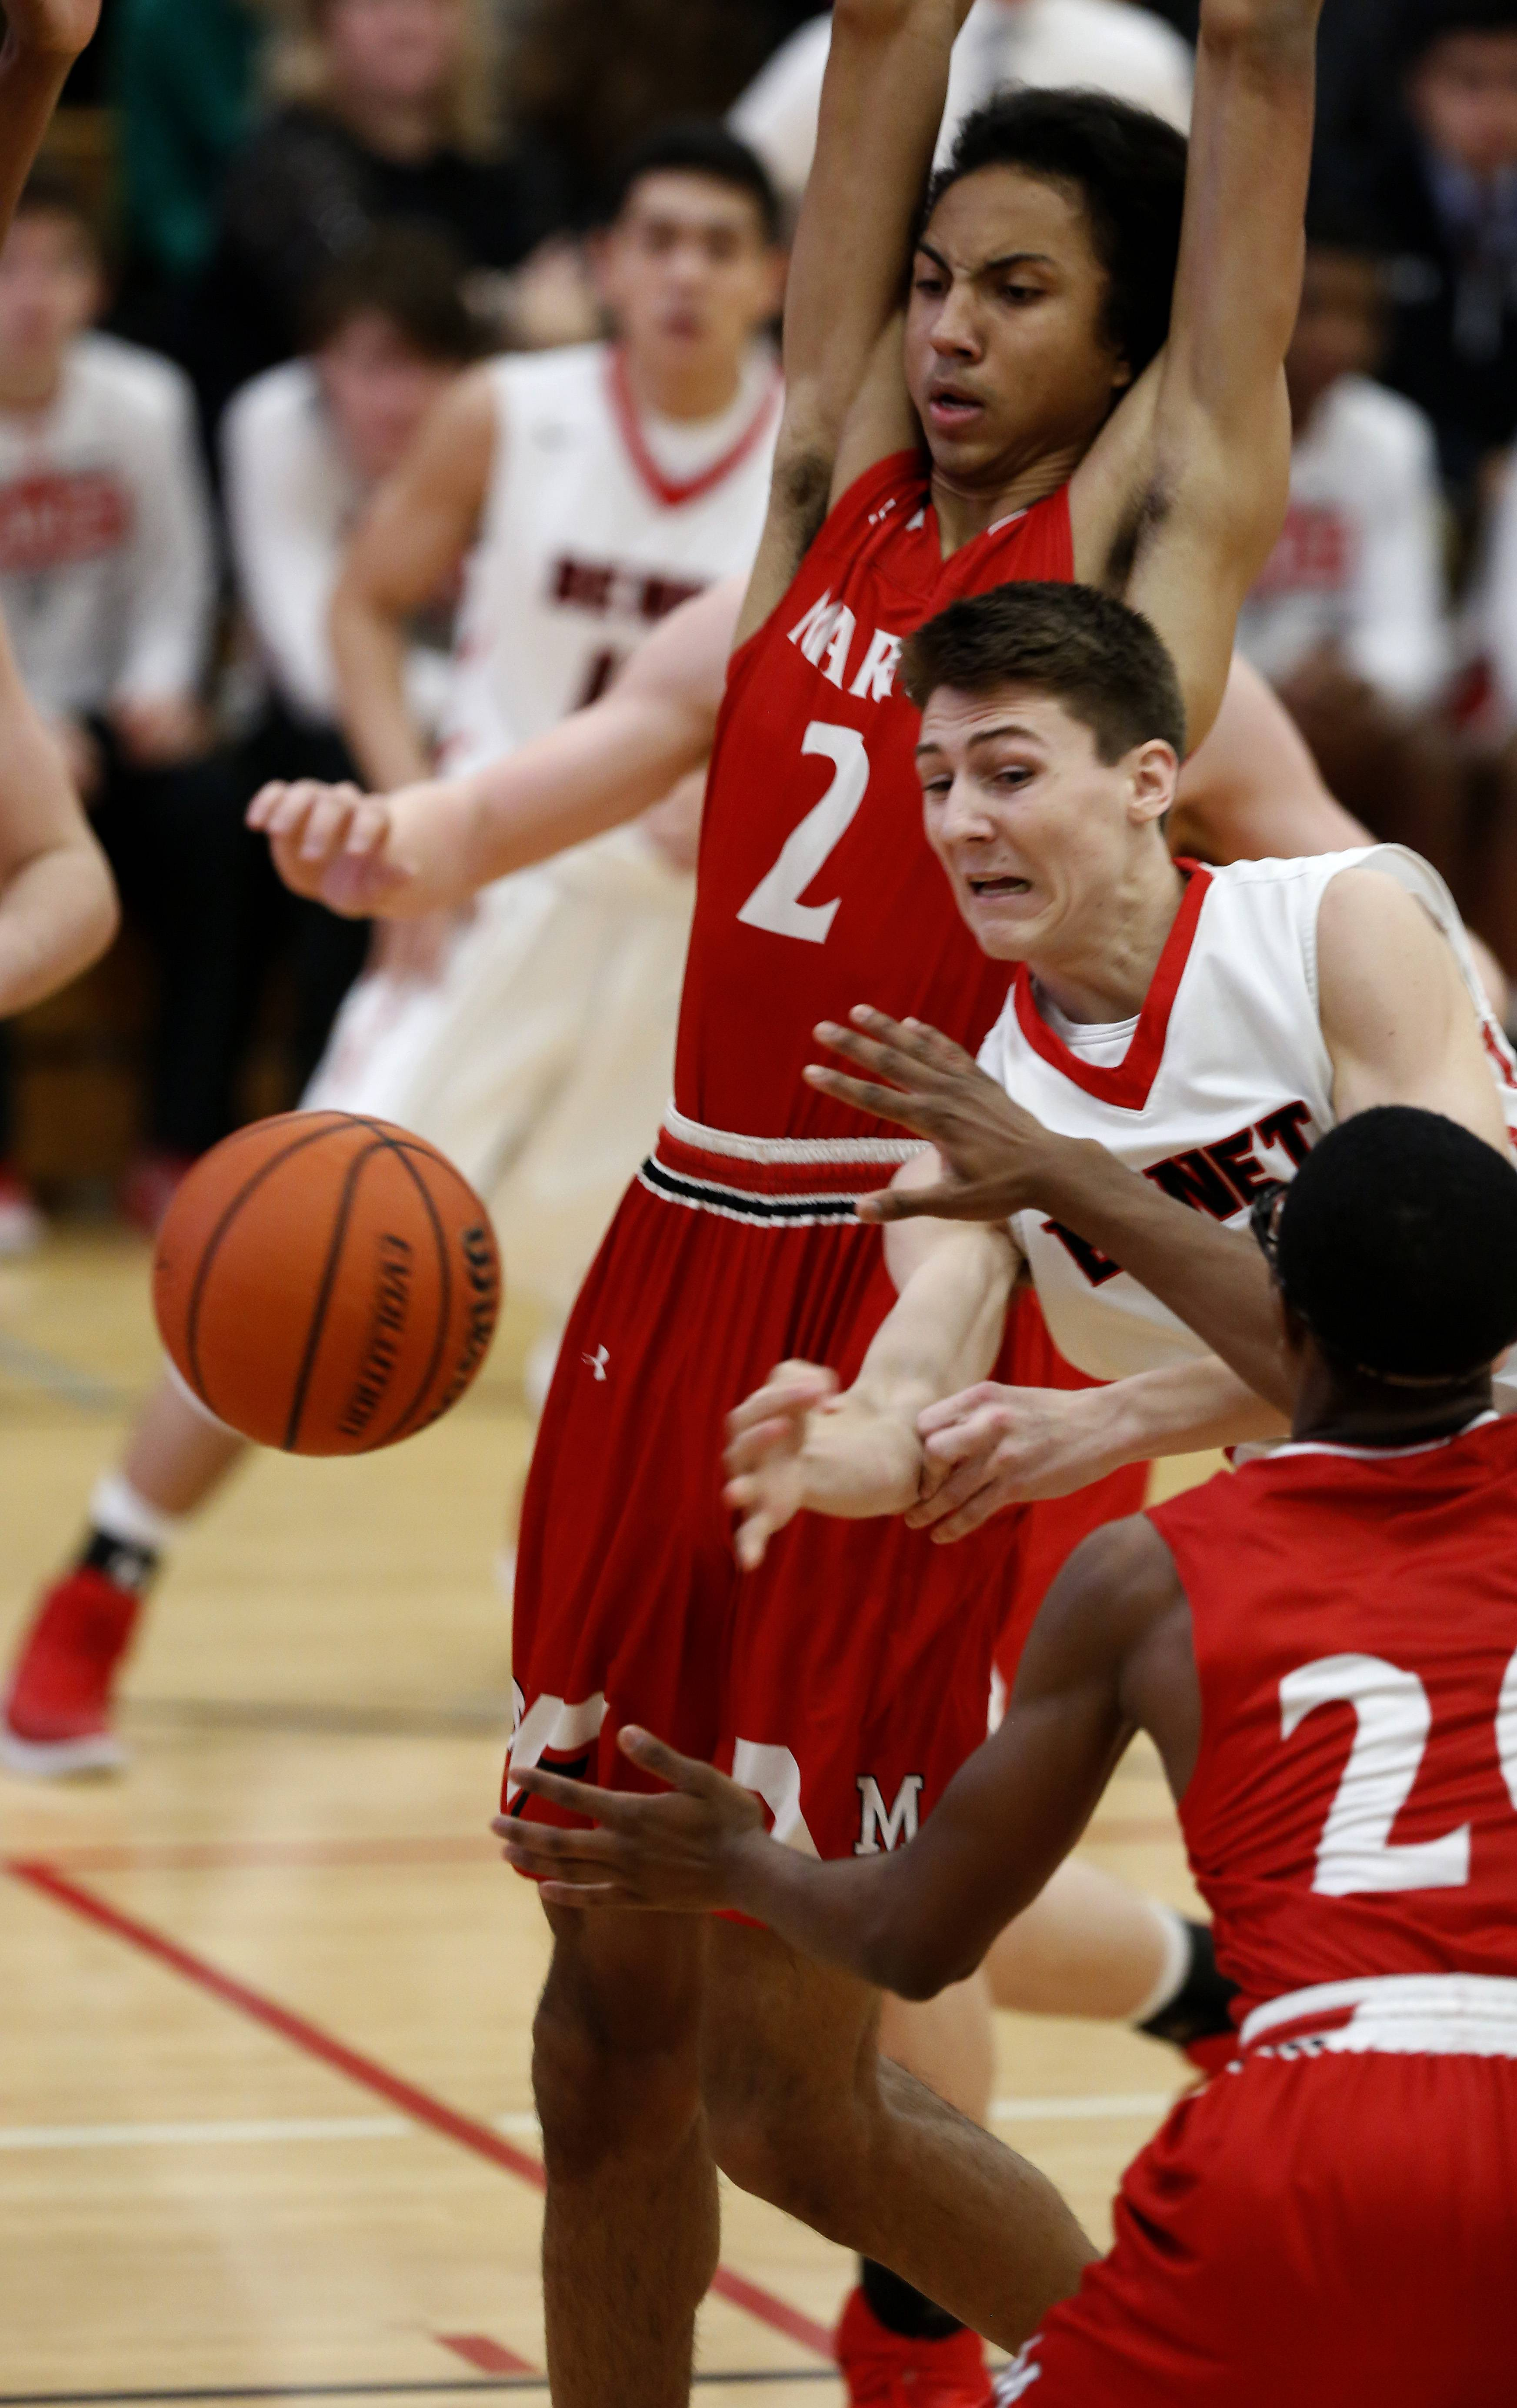 Benet Academy's Jack Nolan drives in the lane against Marist's Justin Brown during boys basketball action in Lisle.